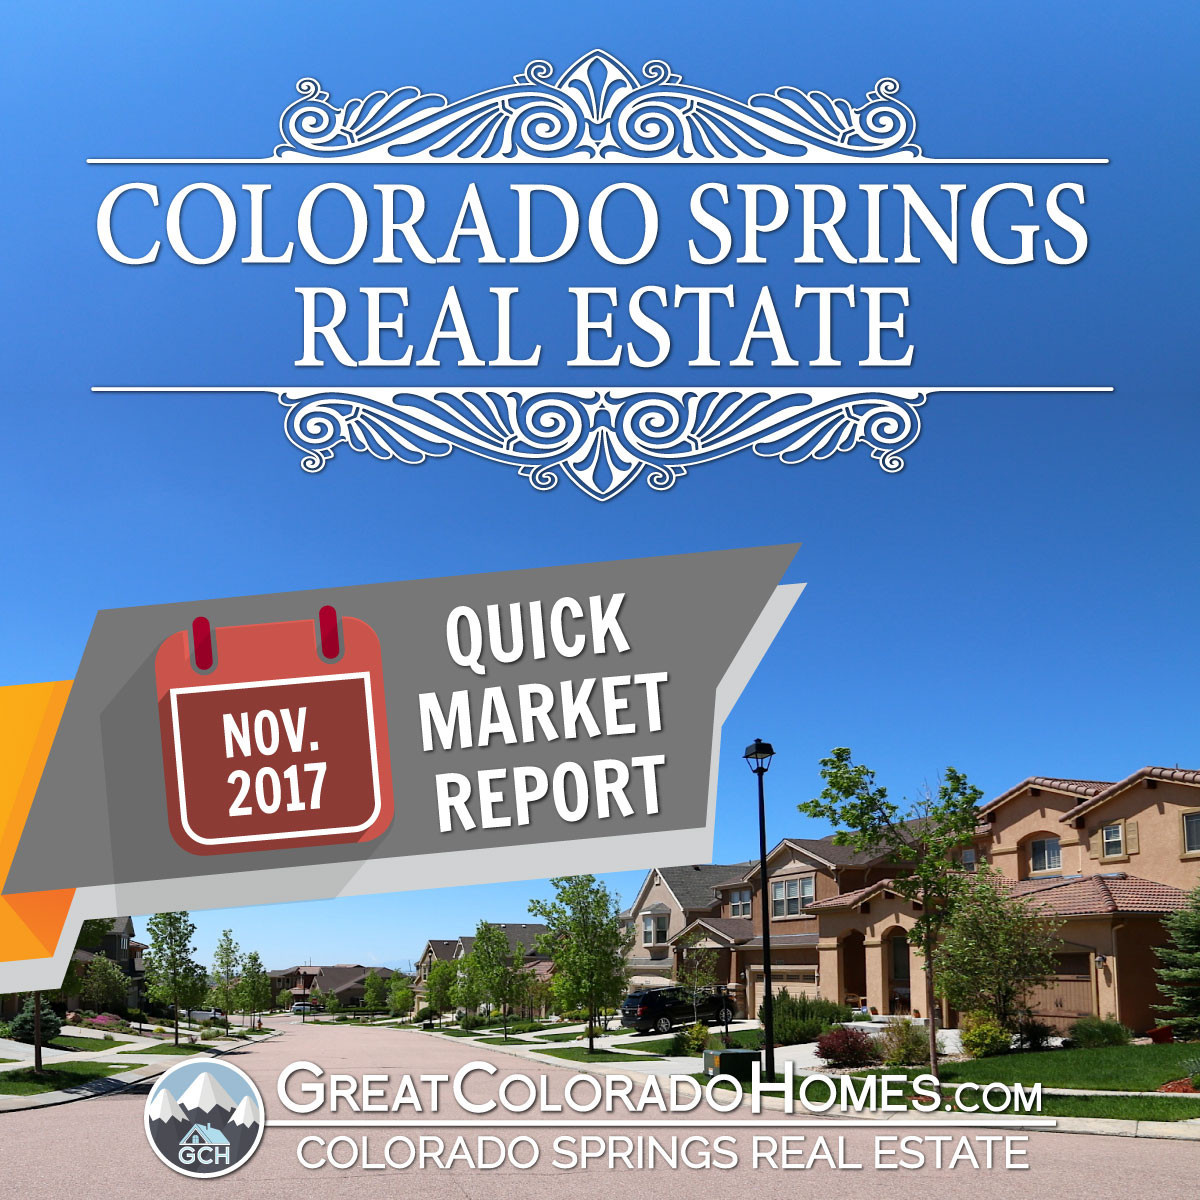 November 2017 Colorado Springs Real Estate Statistics